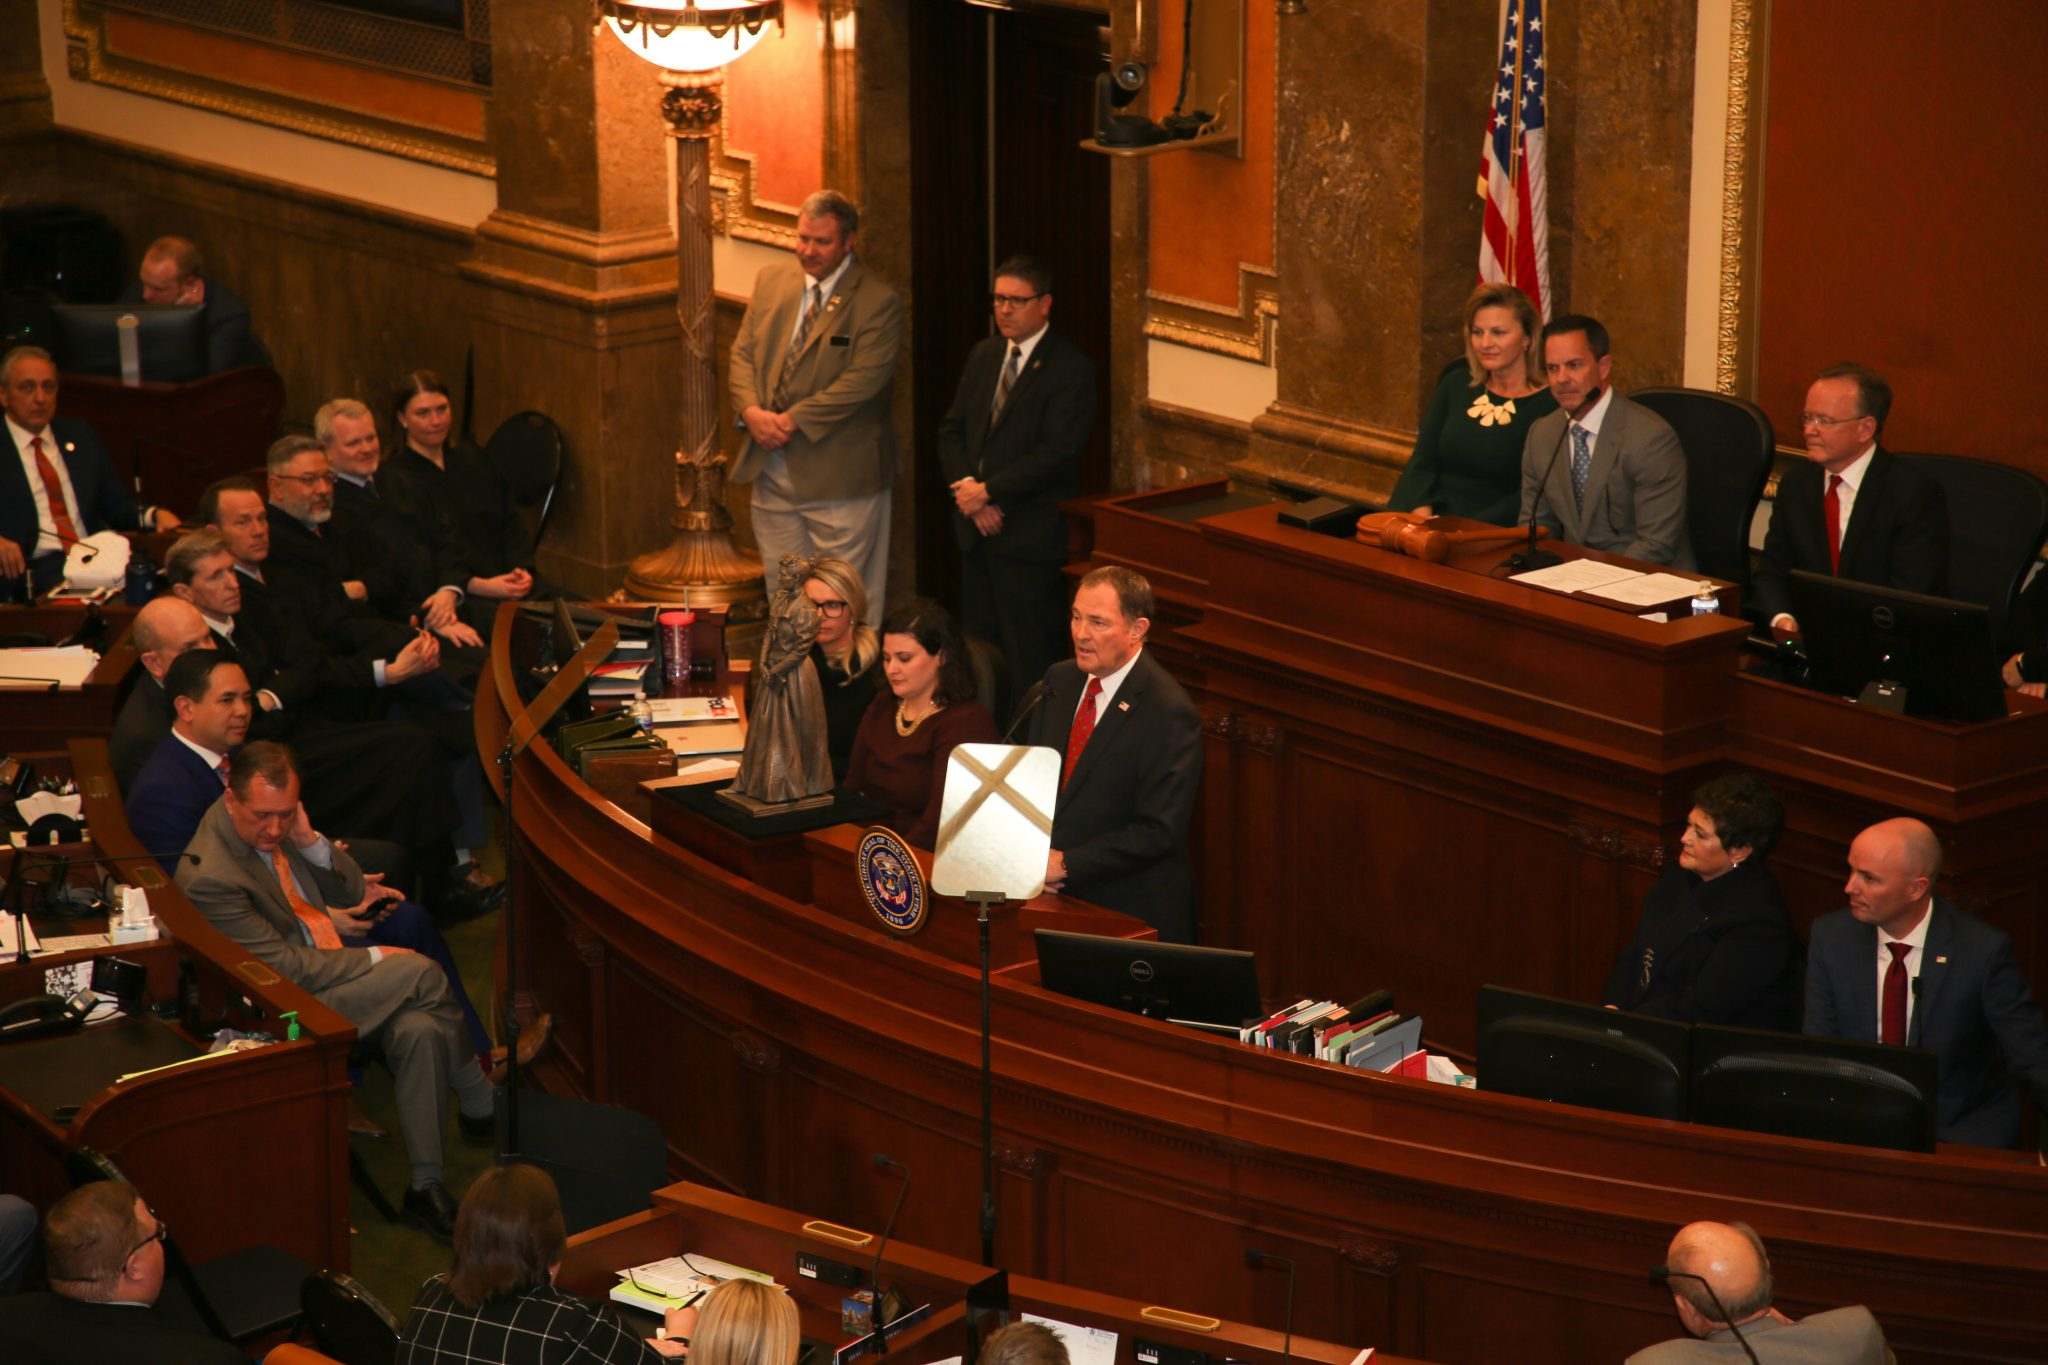 UAMMI Recognized by Governor During State of the State Address